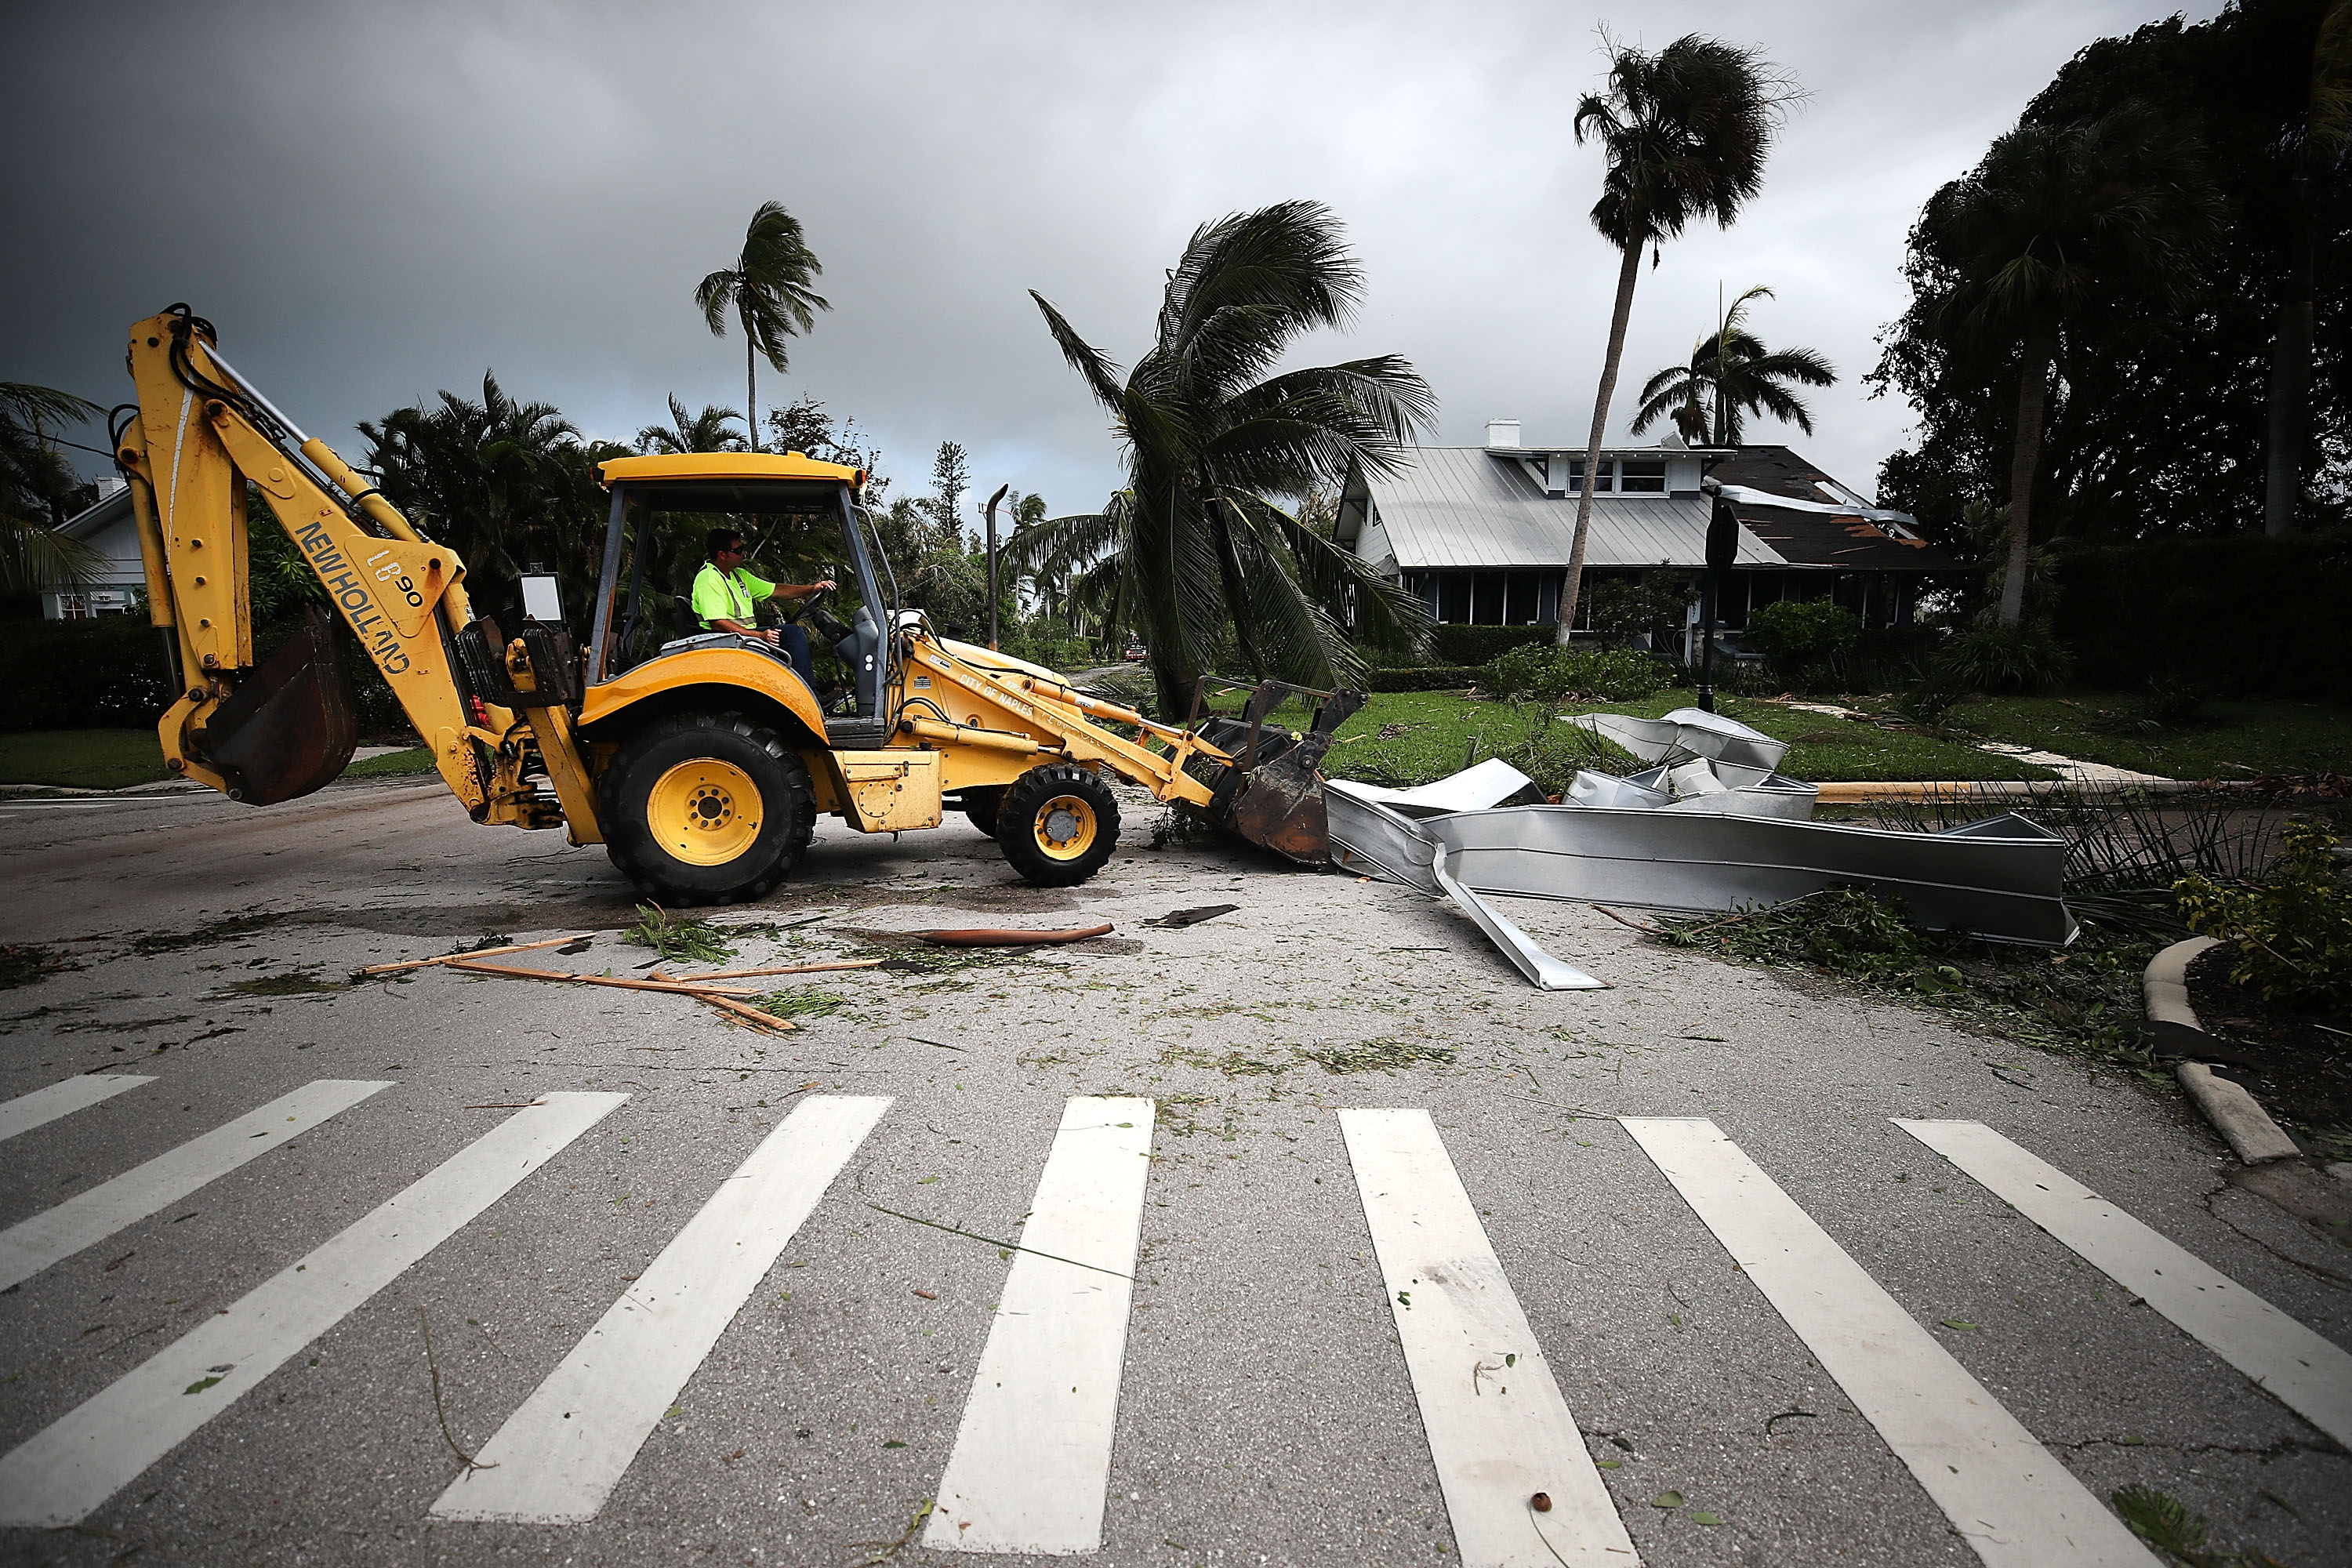 Road crews clear debris after Hurricane Irma passed through on September 11, 2017 in Naples, Florida.